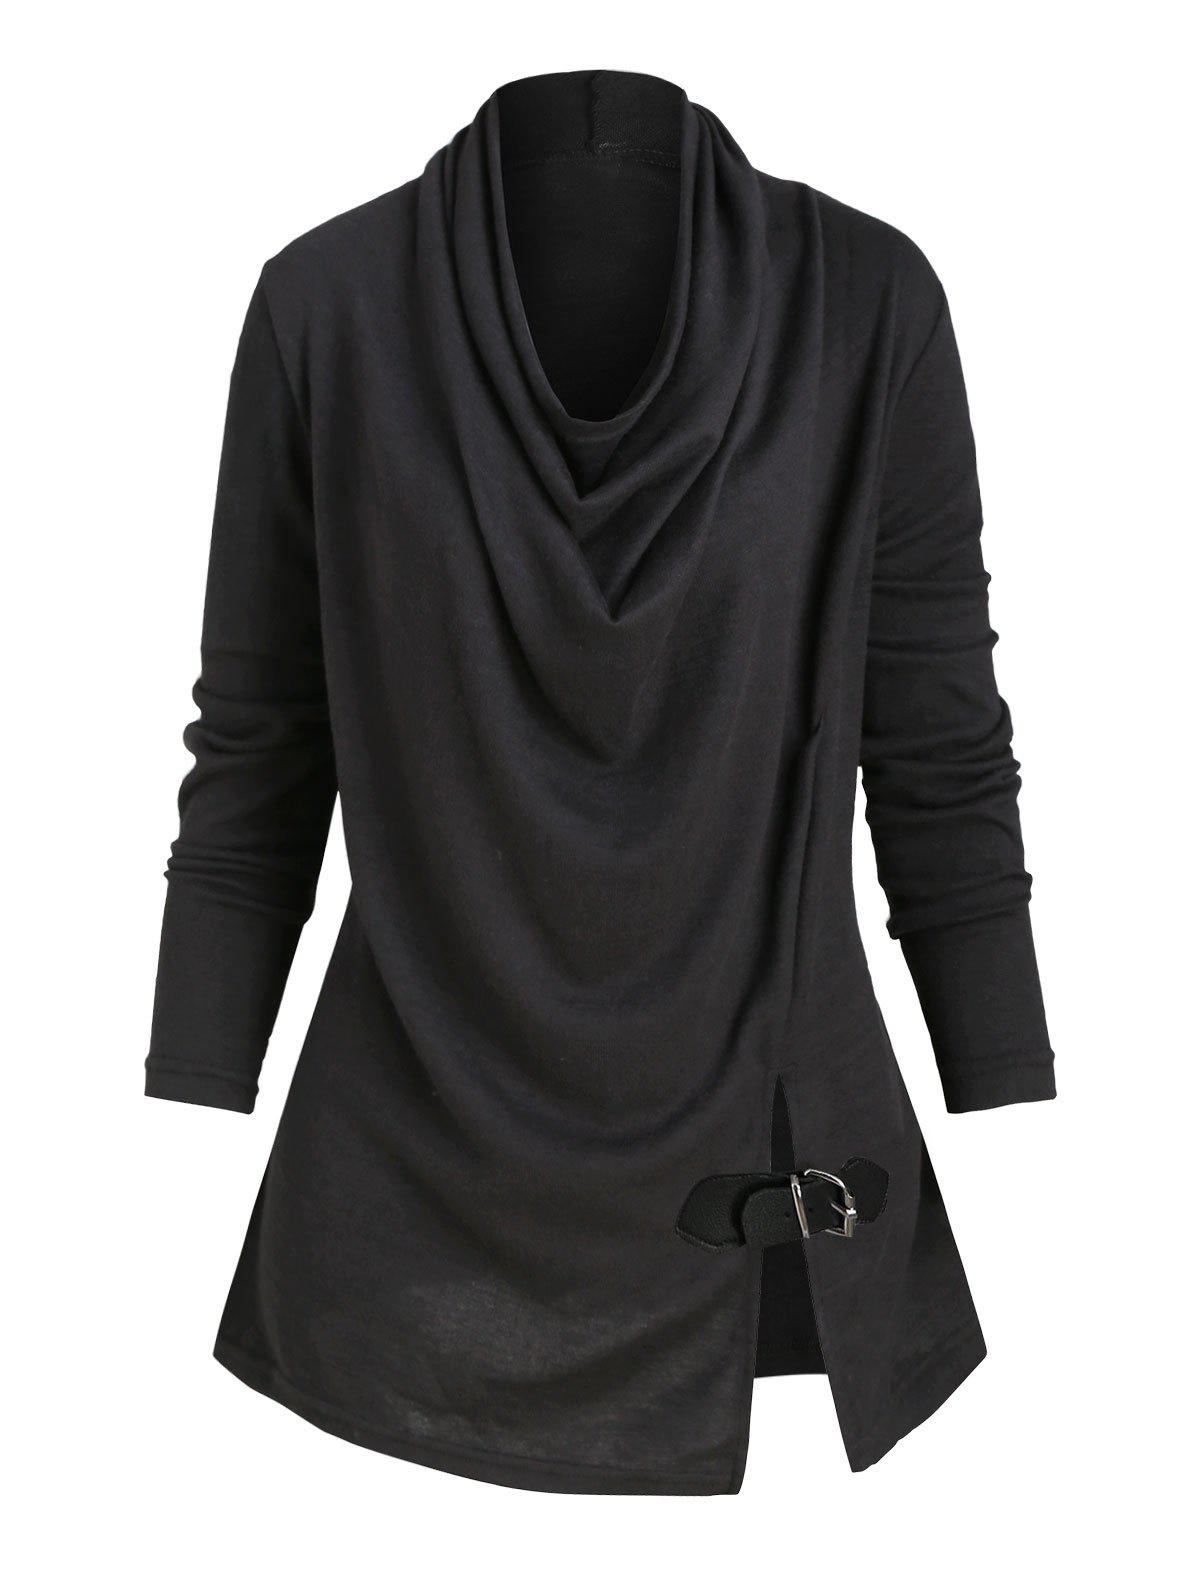 Cowl Neck Slit Buckle Knitwear - NATURAL BLACK S